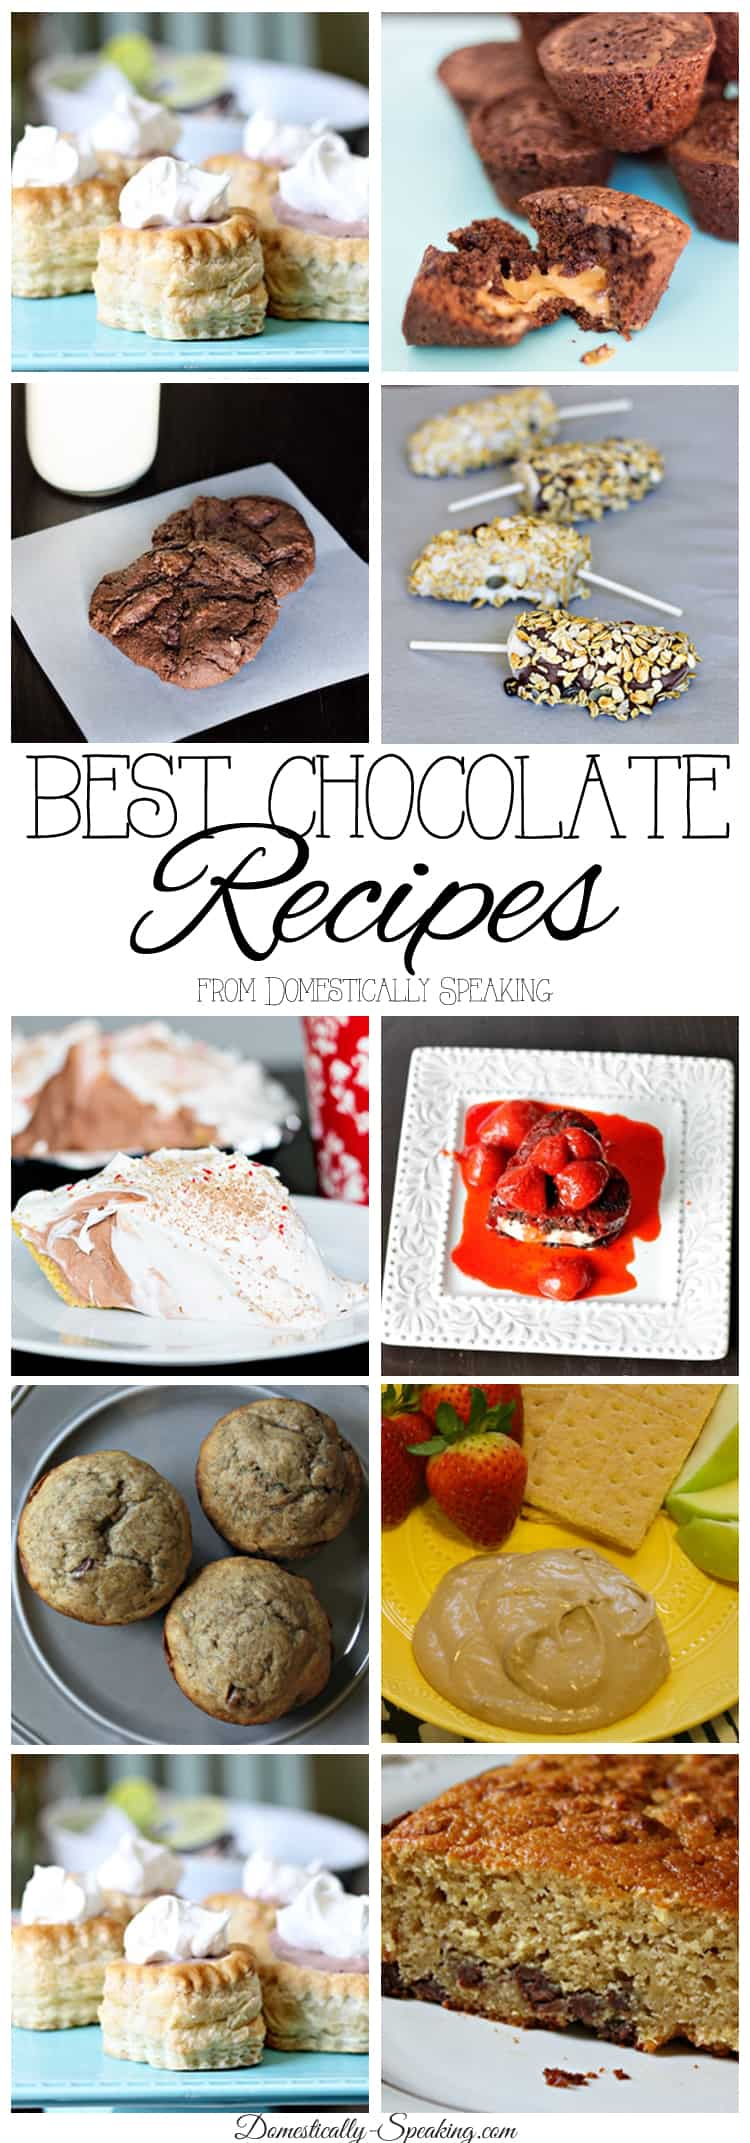 Best Chocolate Recipes - breakfast, treats and desserts